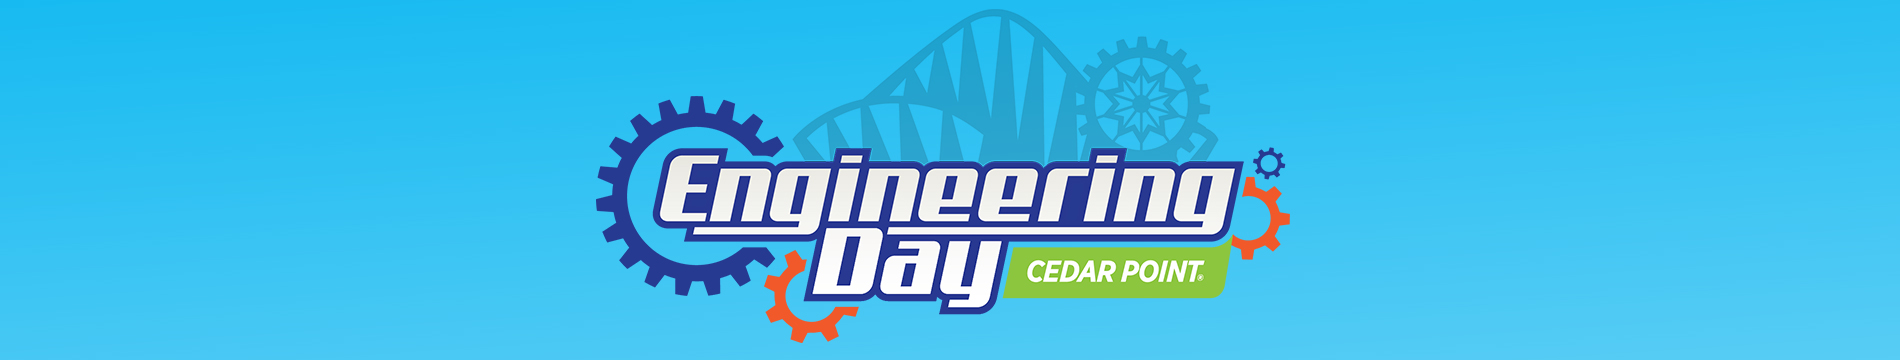 Engineering Days at Cedar Point